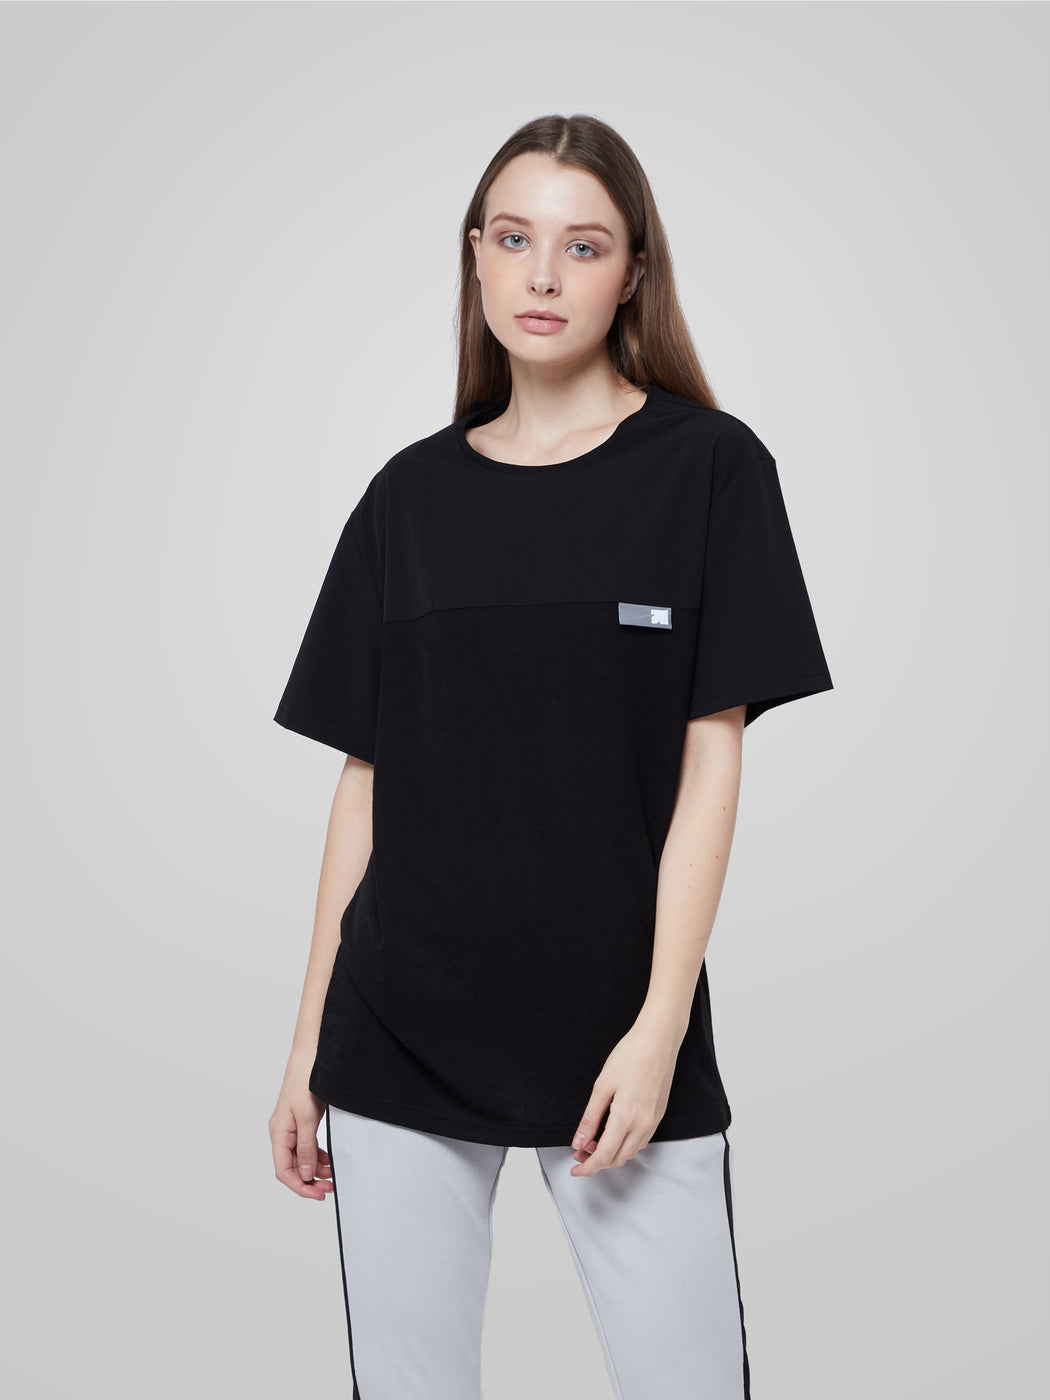 Unisex Ultimate Utilitarian Black Female T-shirt